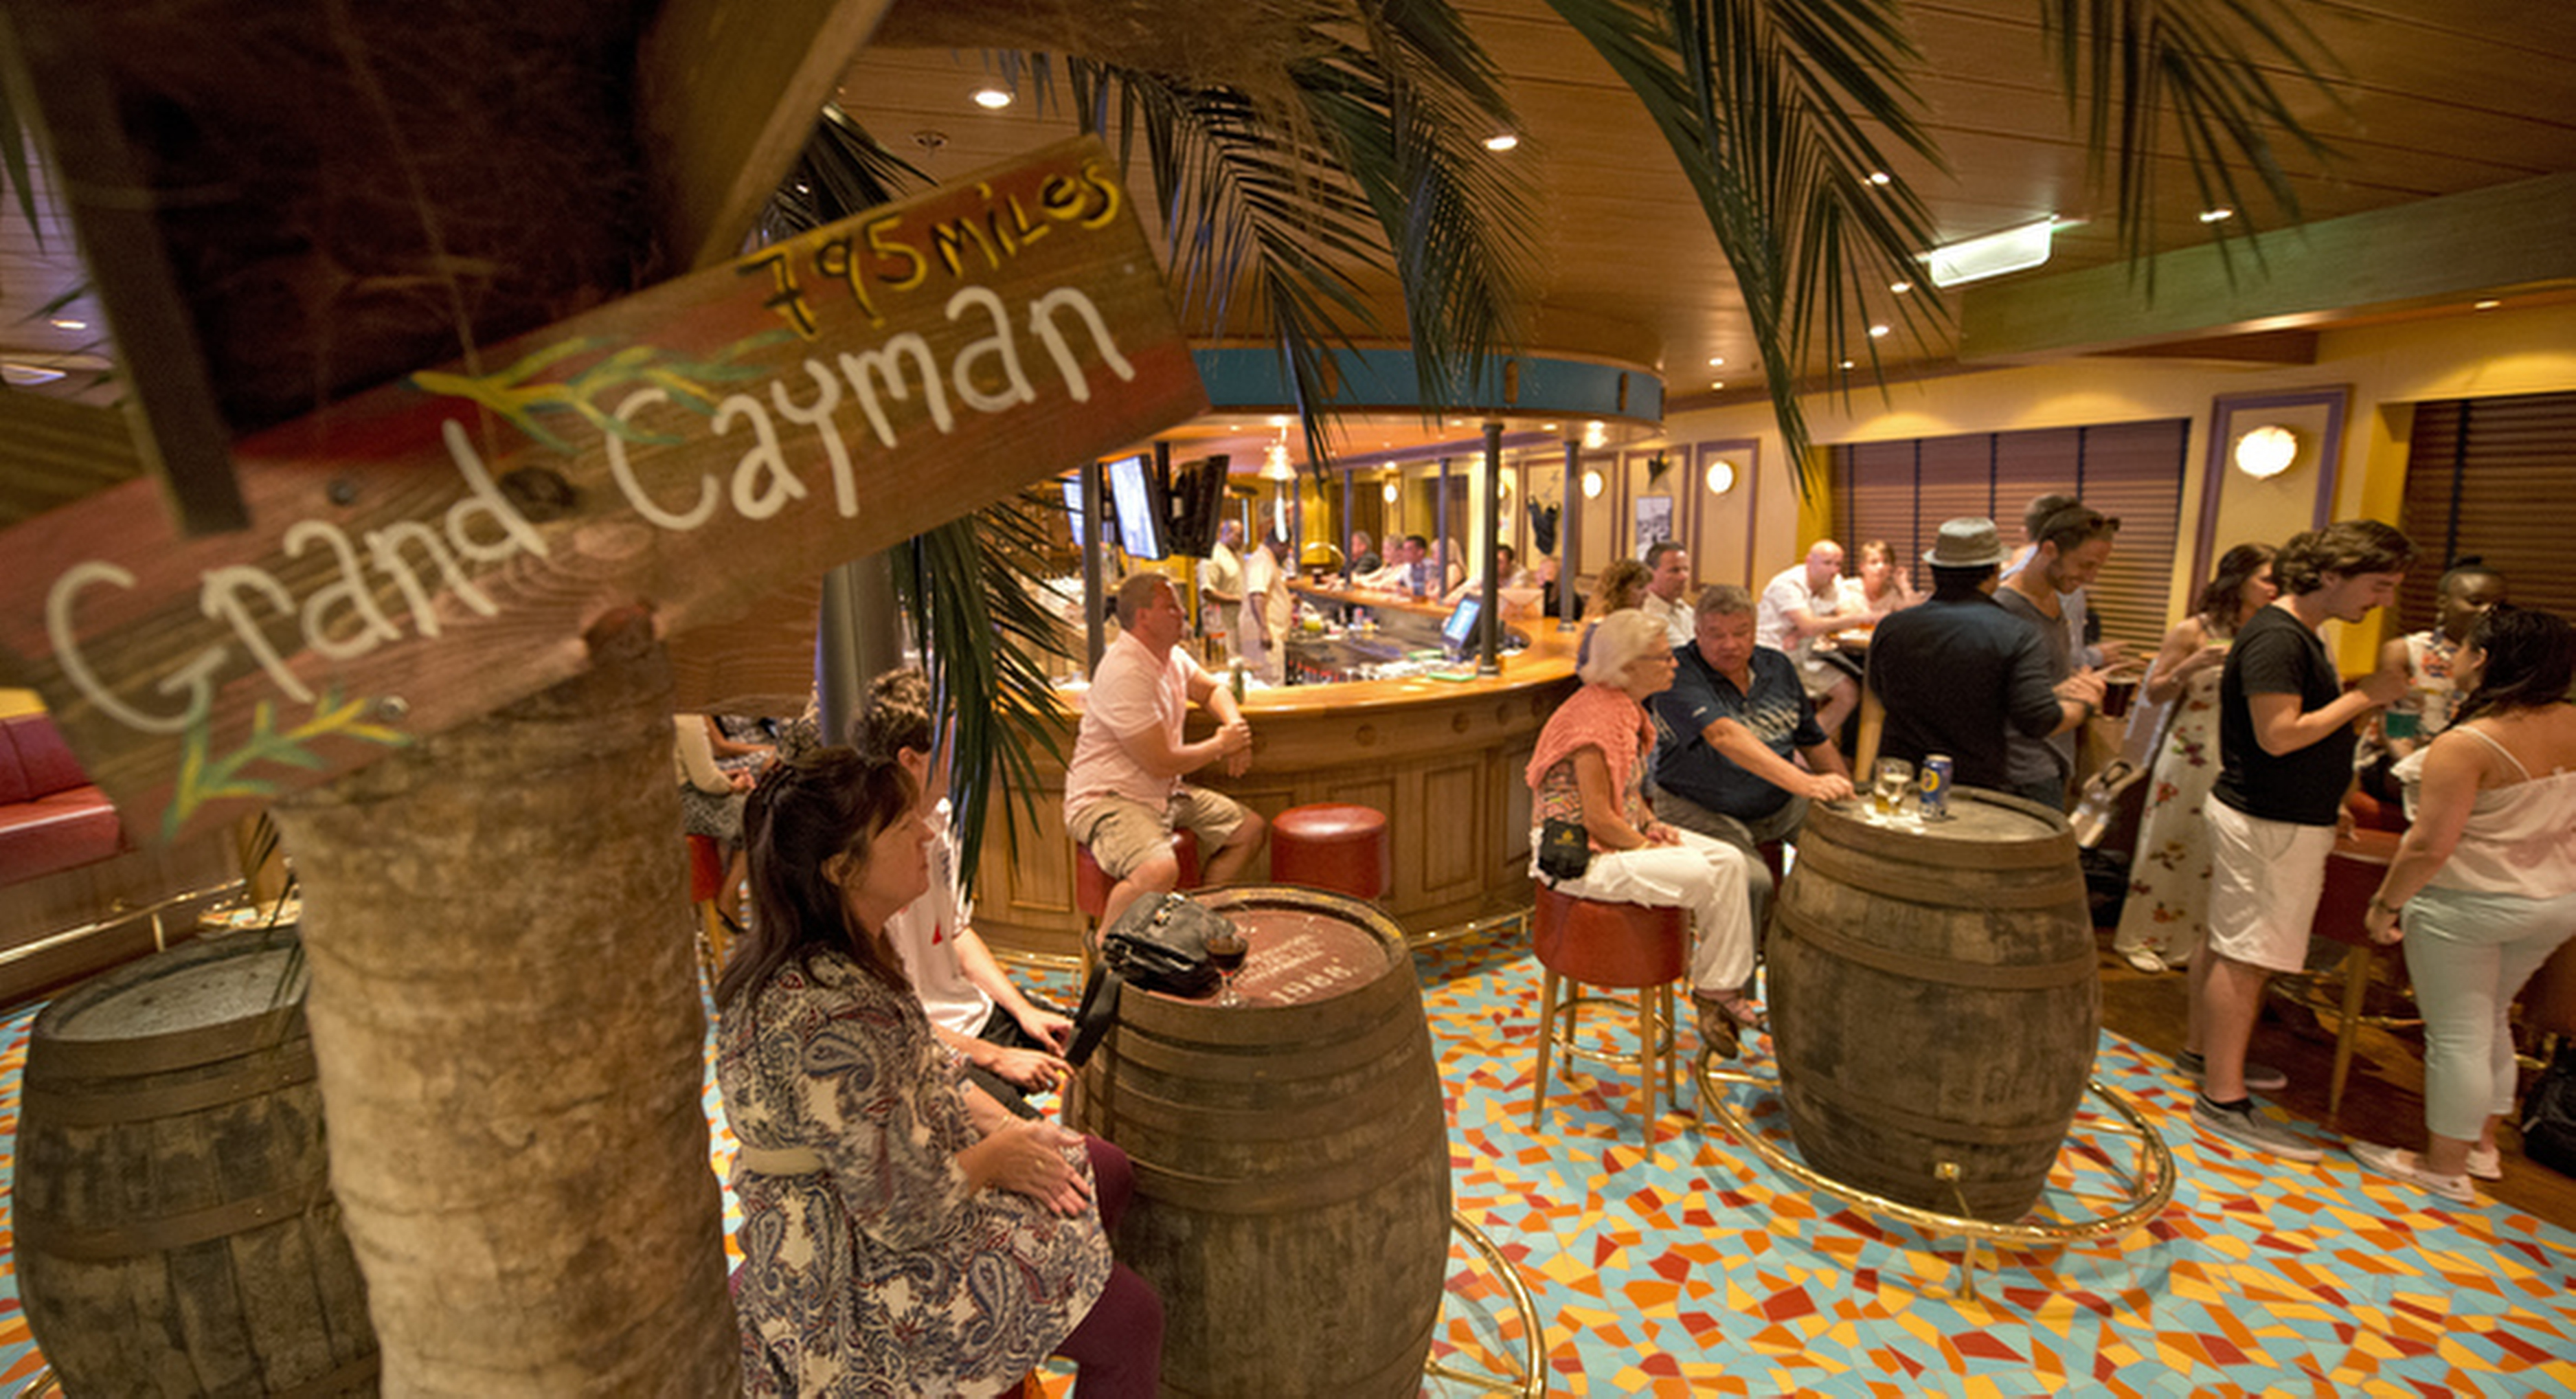 Carnival Valor Undergoes Extensive Makeover That Adds A Variety Of Popular Dining And Bar Concepts